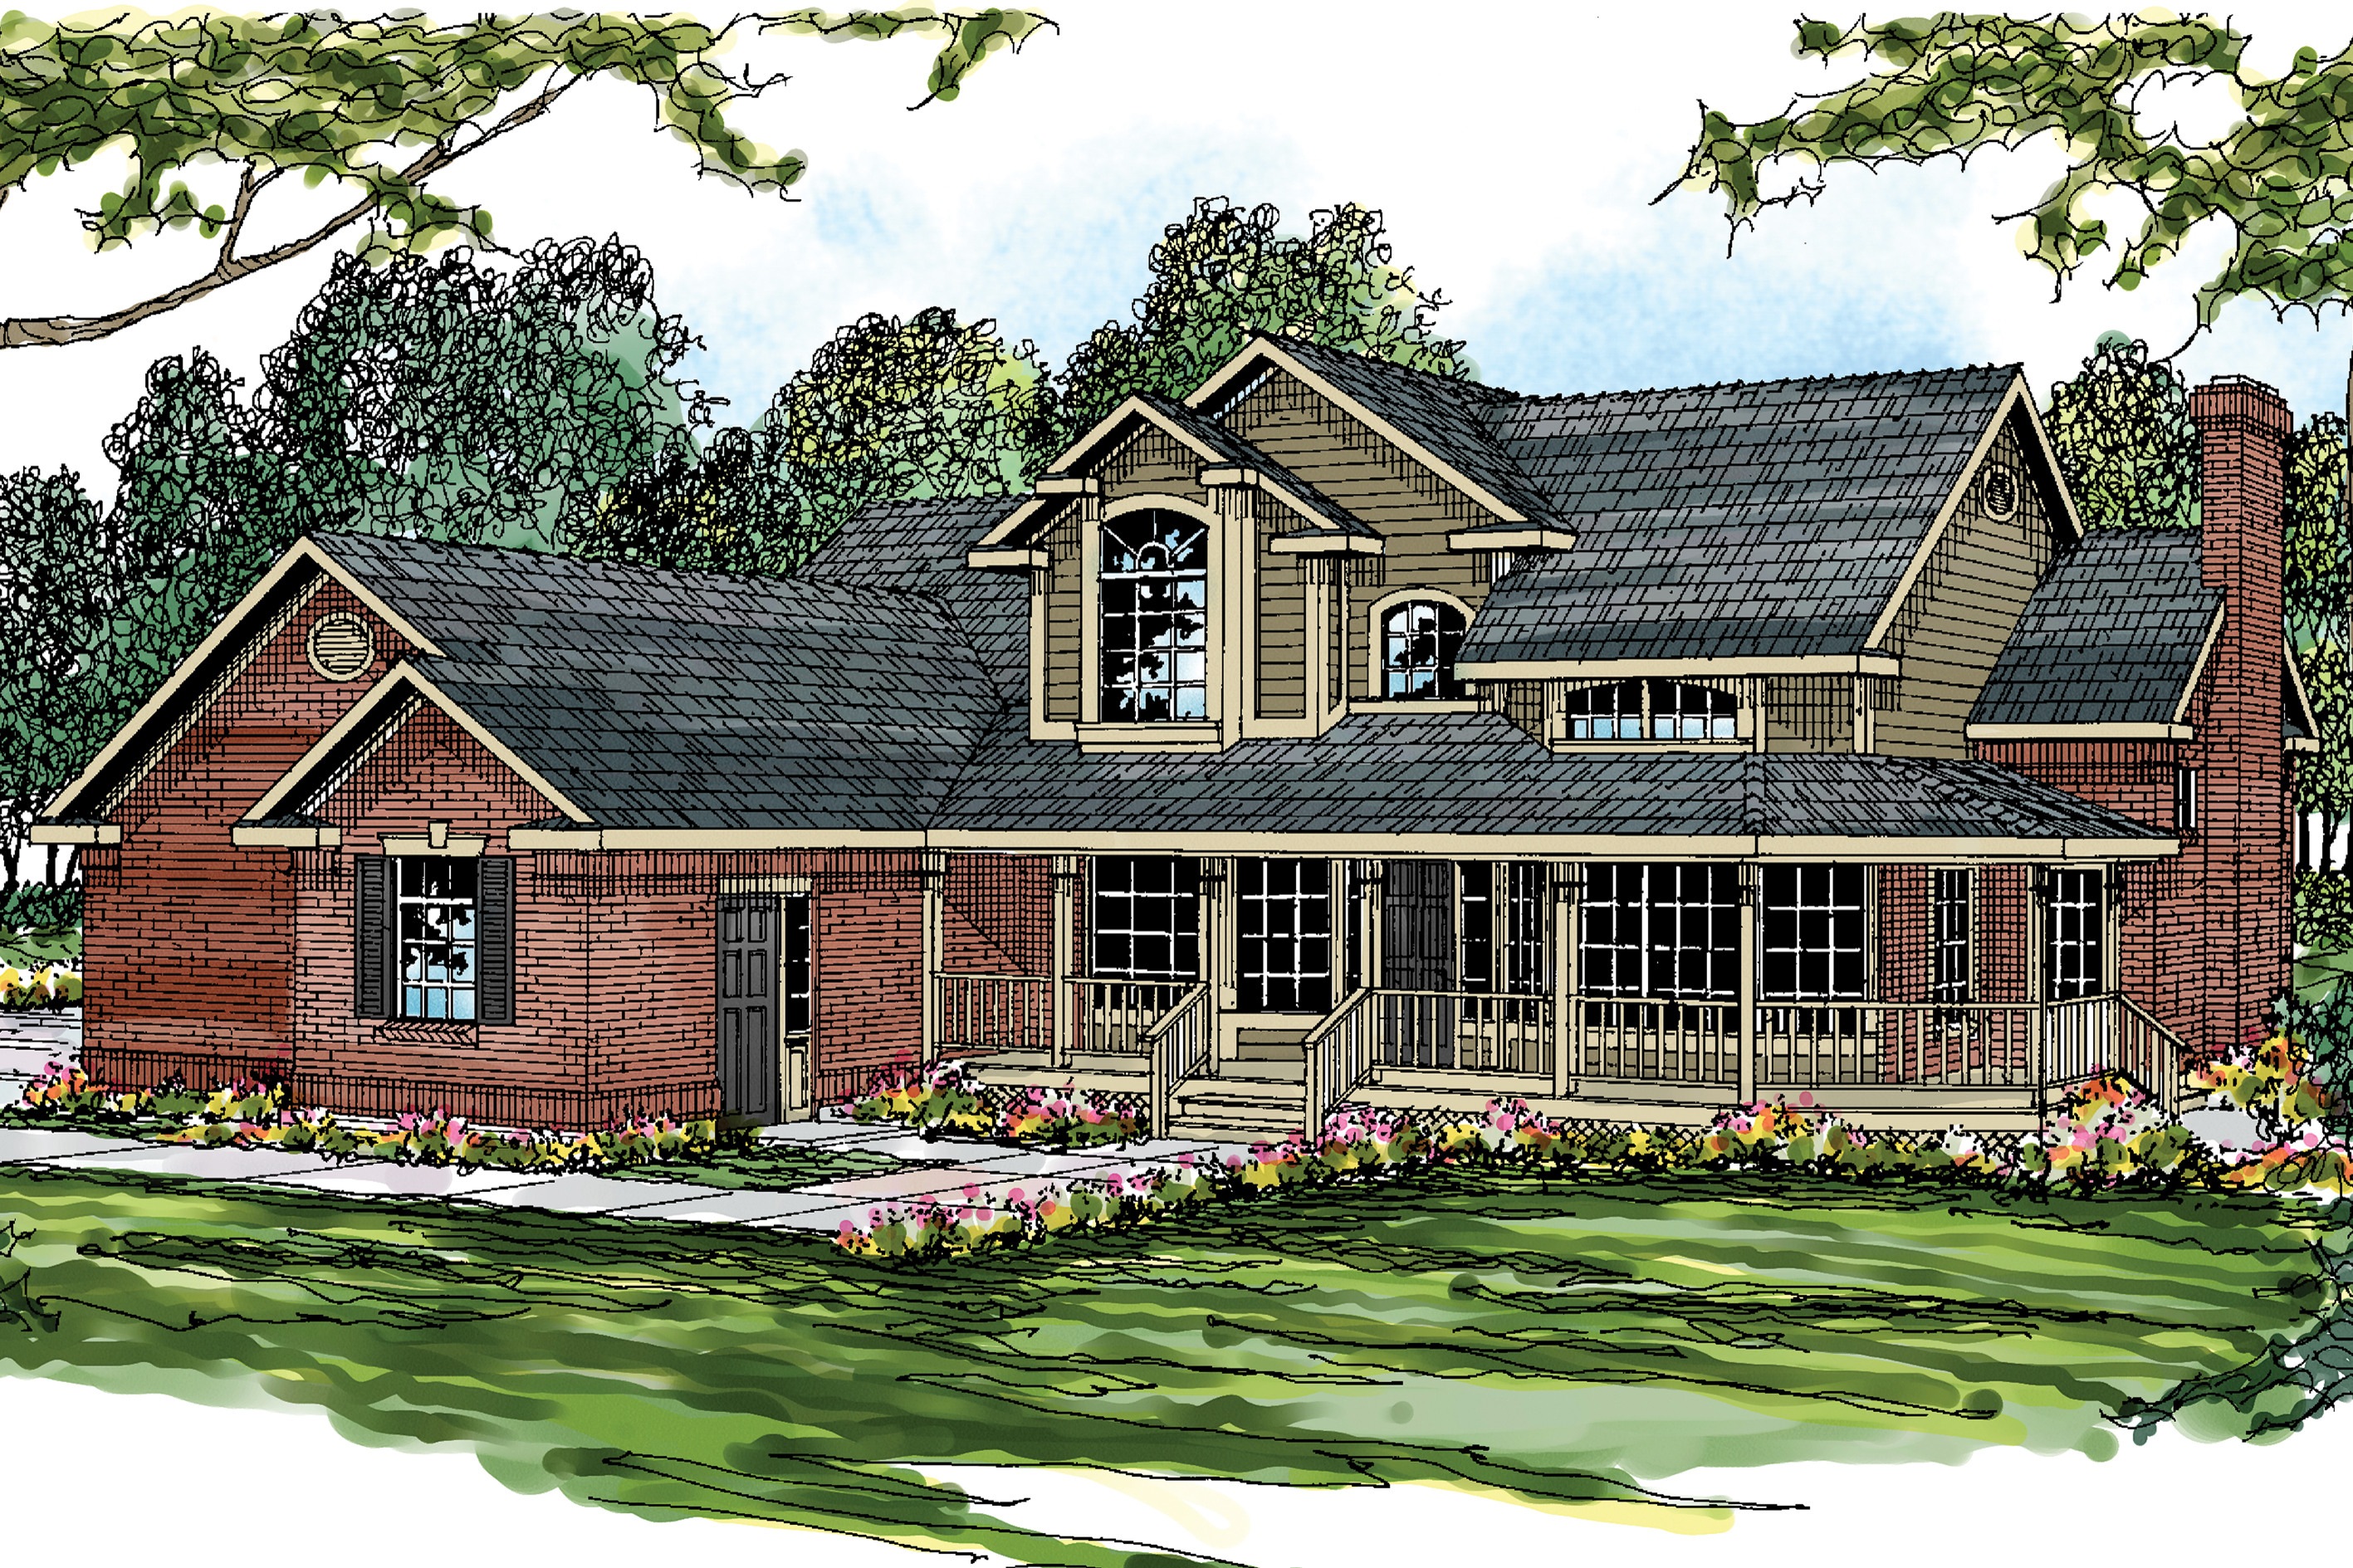 Featured House Plan of the Week, Country House Plan, Home Plan, Charleston 10-252